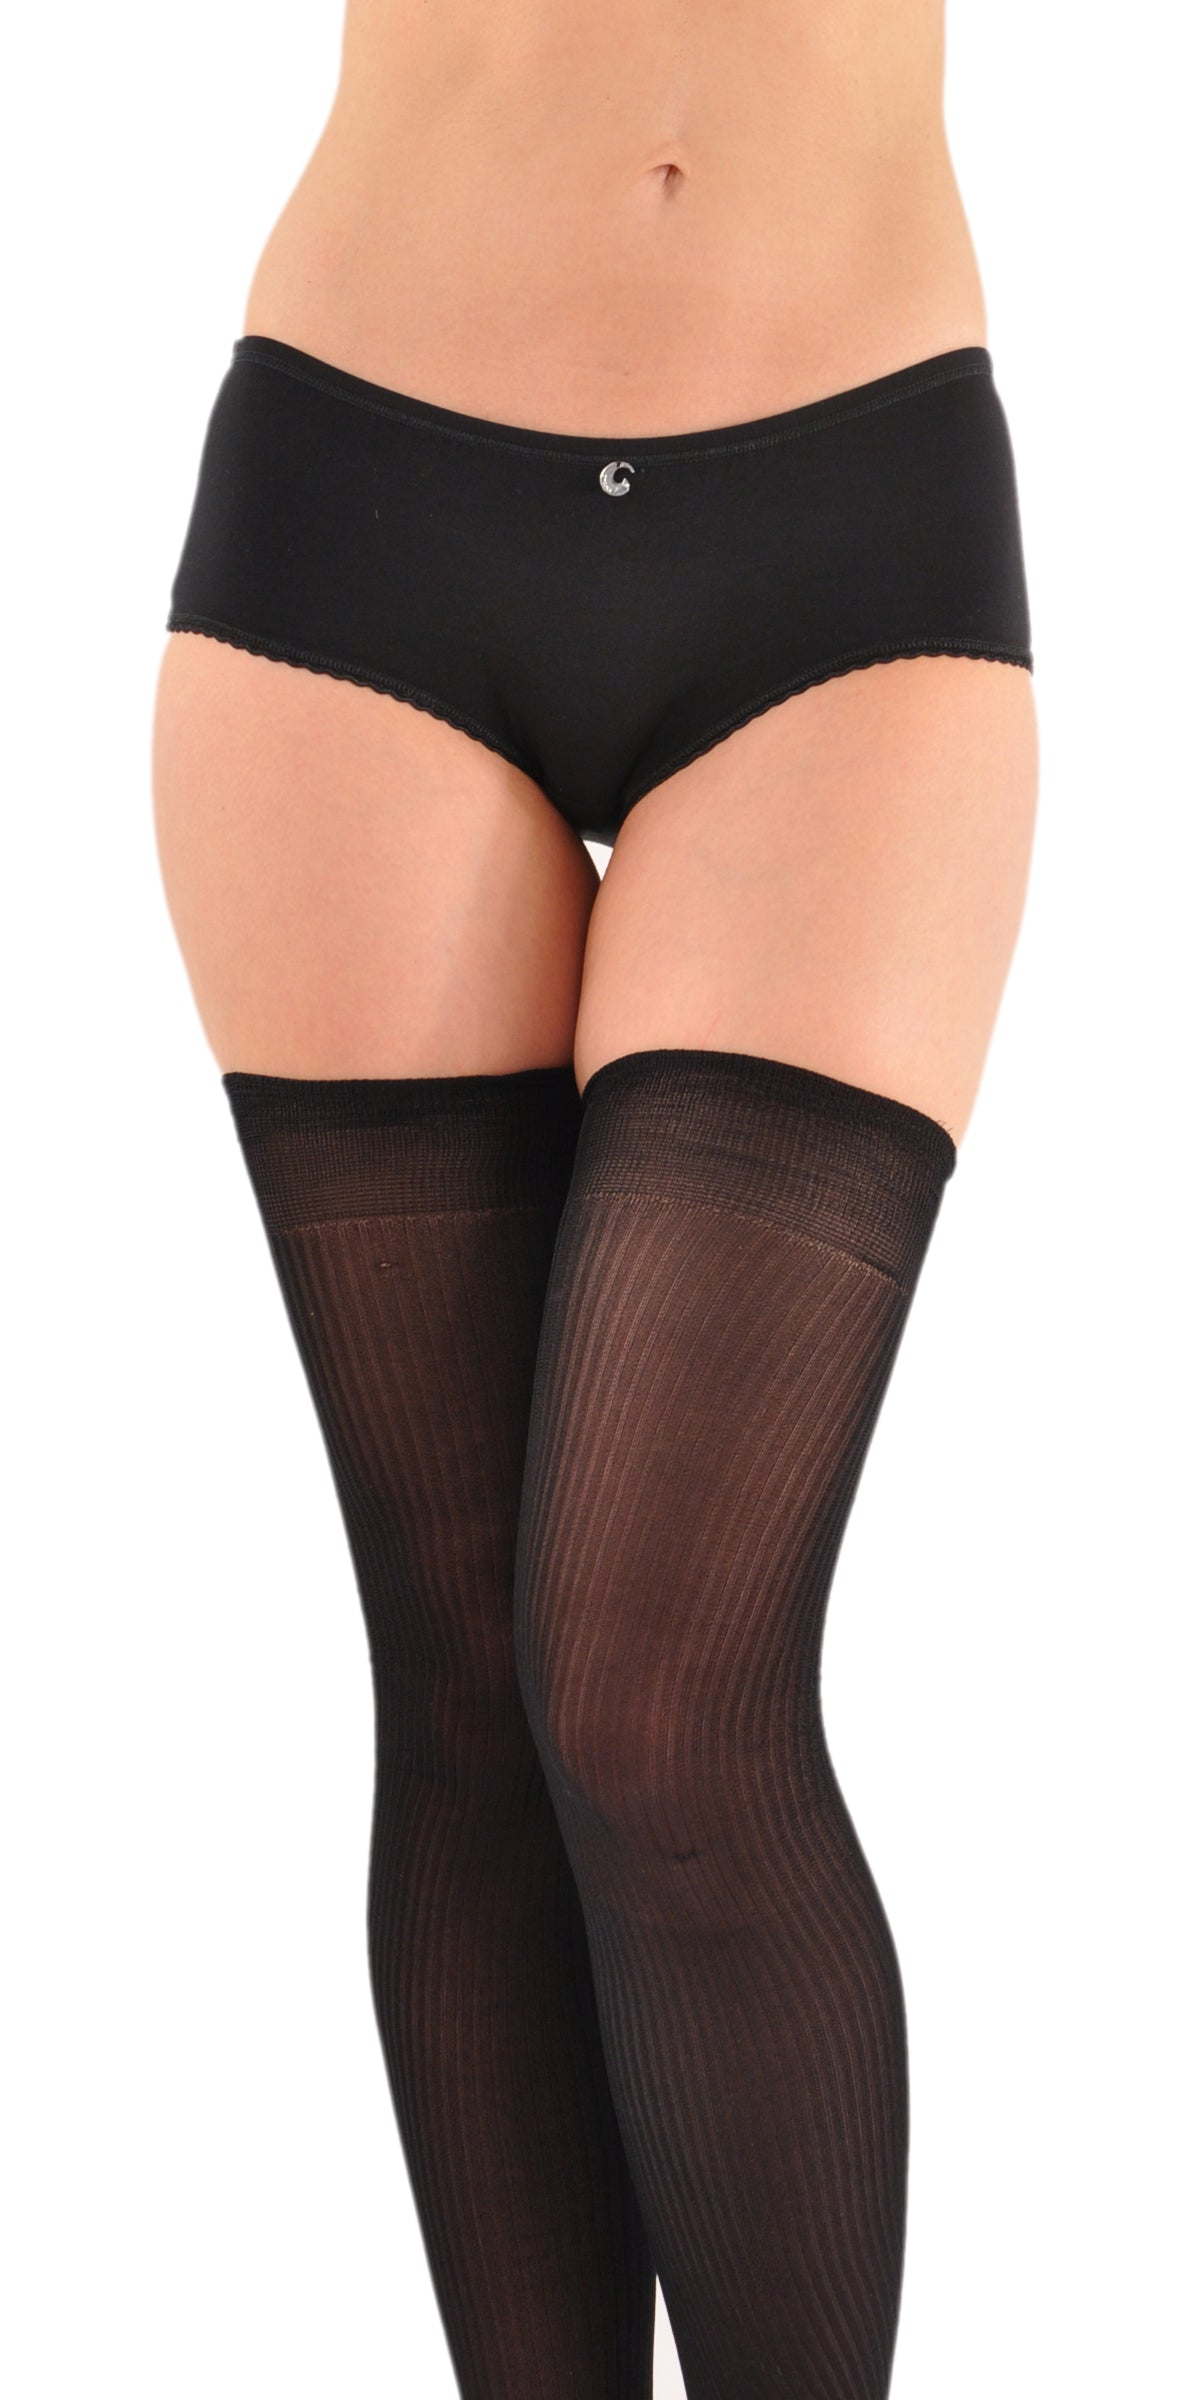 Kabbaz-Kelly Pure Elegance Luxury Boy Short Panty